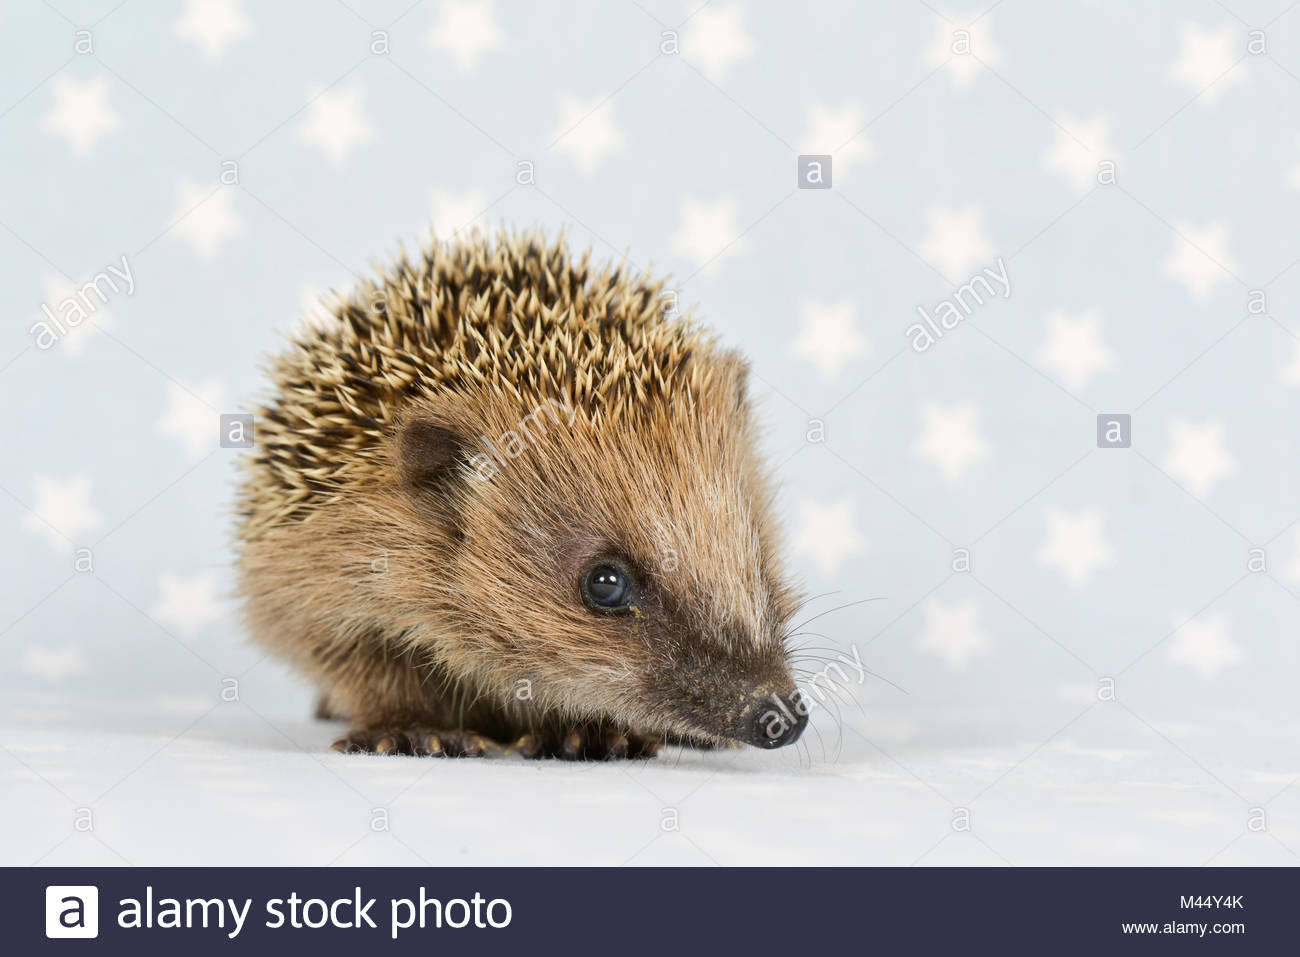 European Hedgehog (Erinaceus europaeus). Young (4 weeks old), standing. Studio picture, seen against a gray background - Stock Image